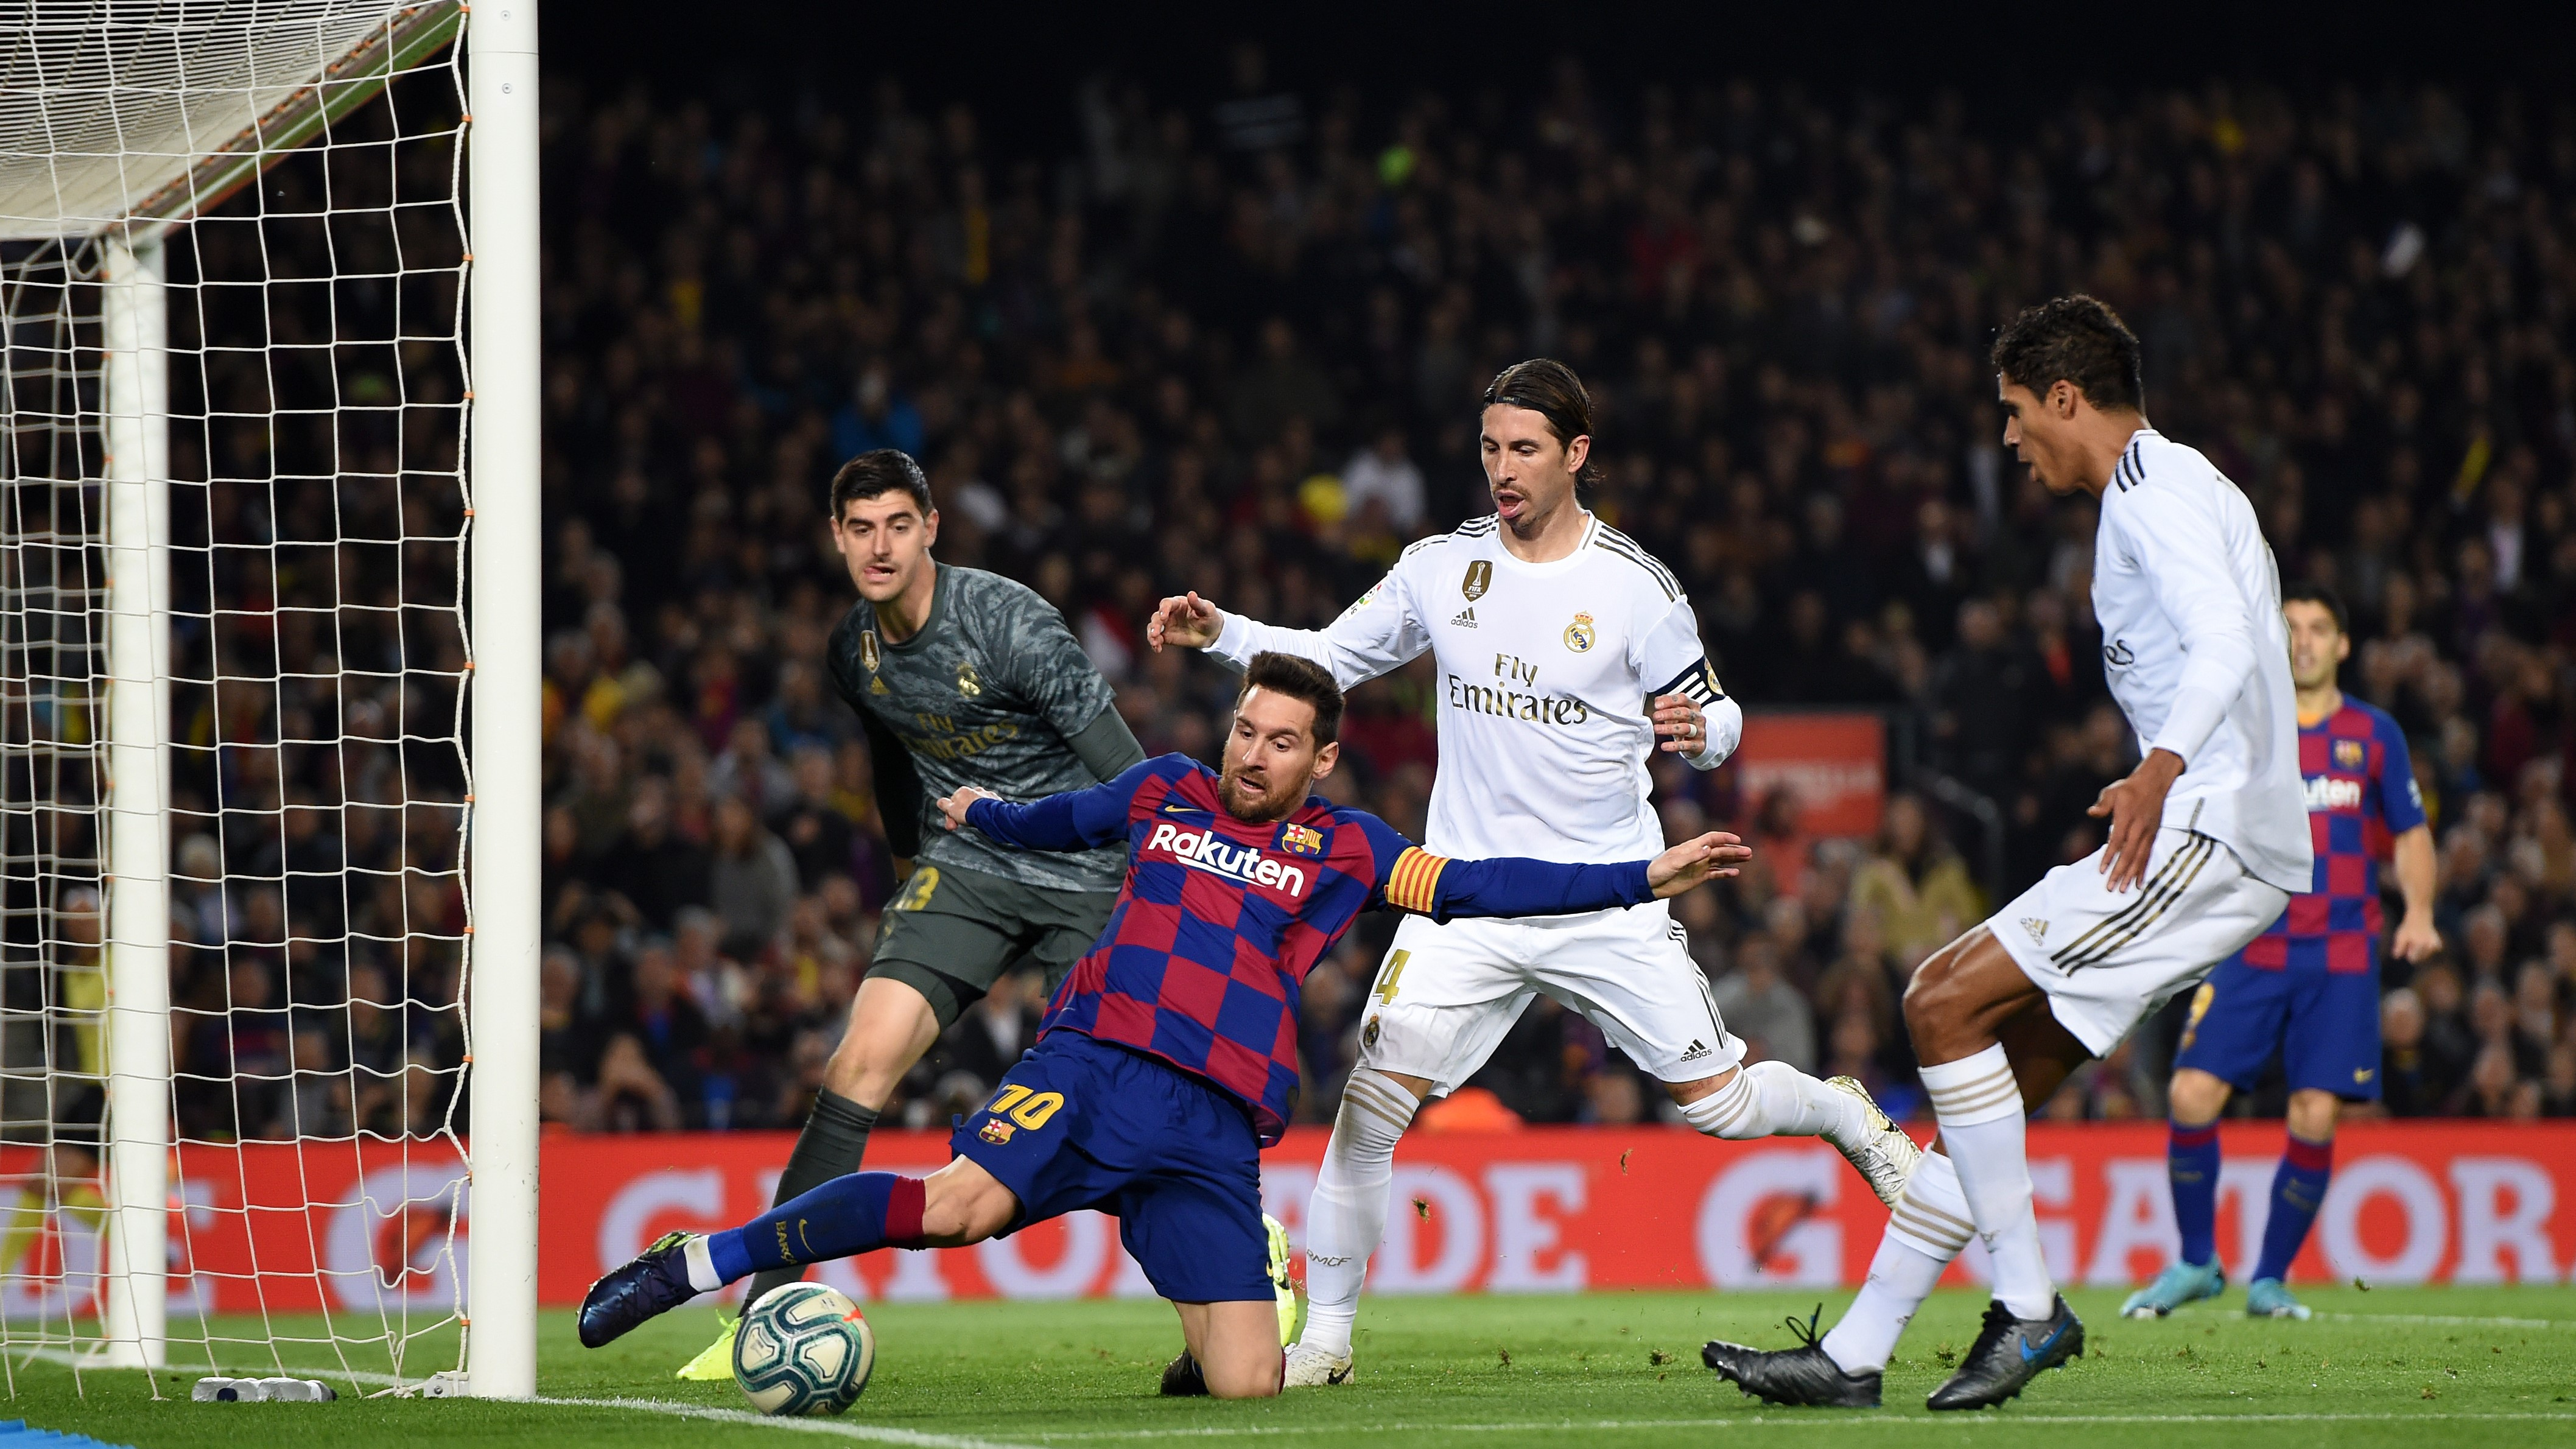 Real Madrid vs Barcelona live stream: how to watch El Clasico 2020 online from anywhere